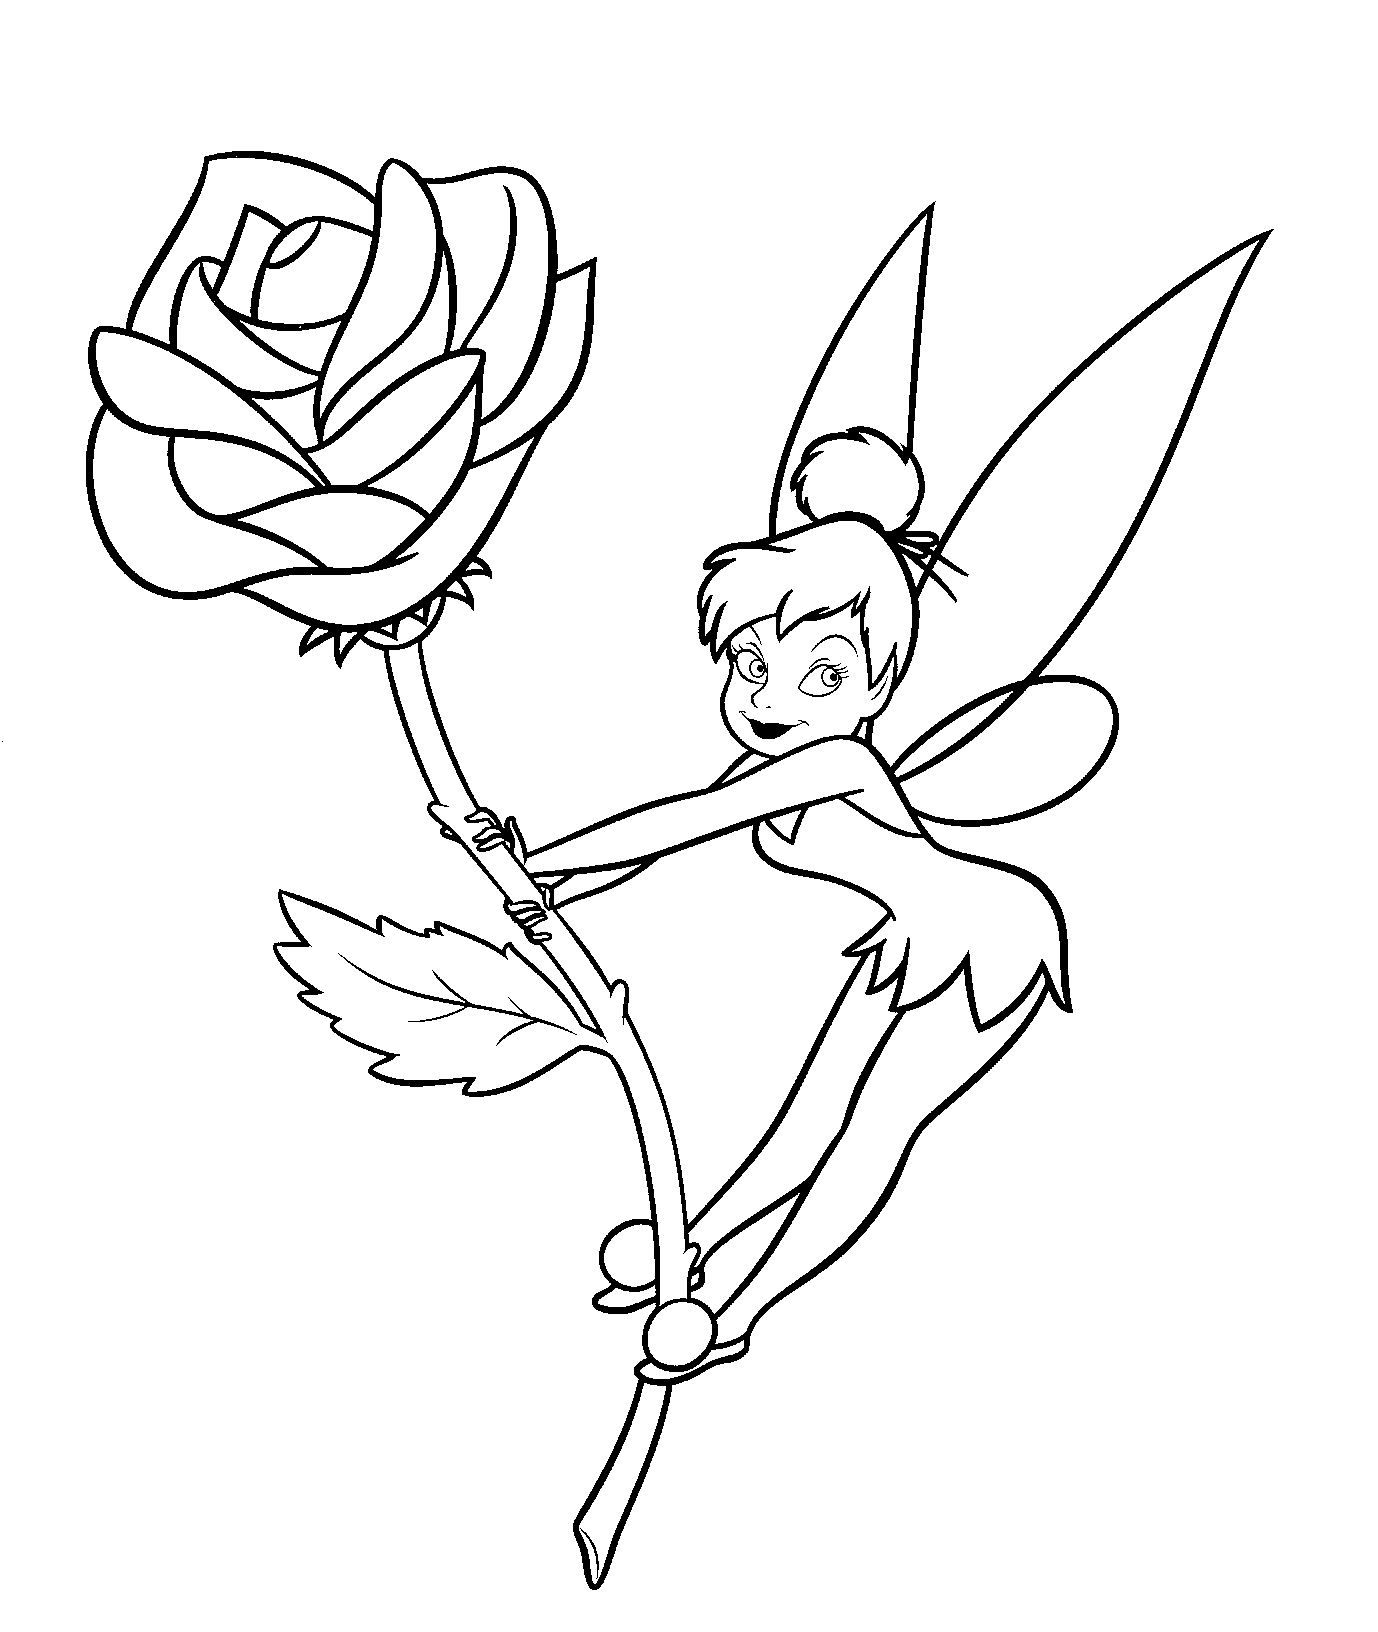 tinkerbell head coloring pages - photo#35